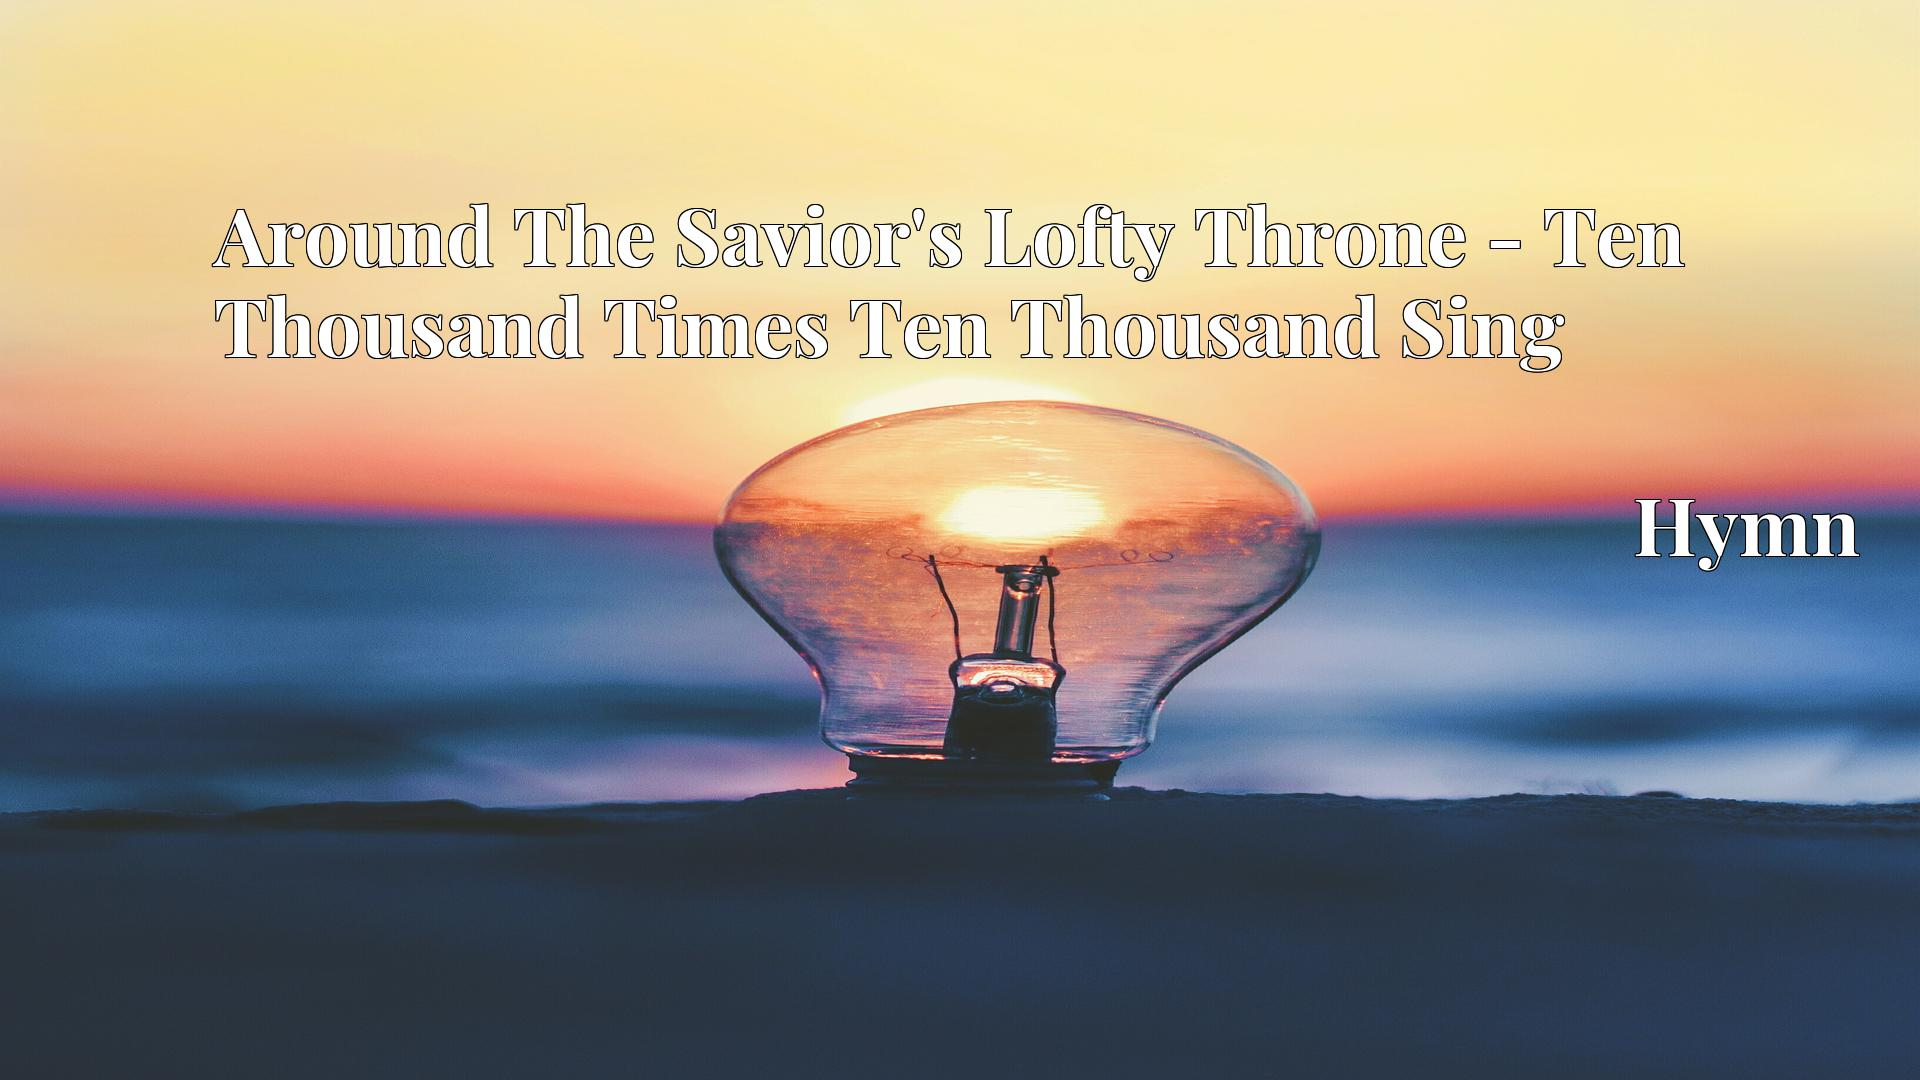 Around The Savior's Lofty Throne - Ten Thousand Times Ten Thousand Sing - Hymn